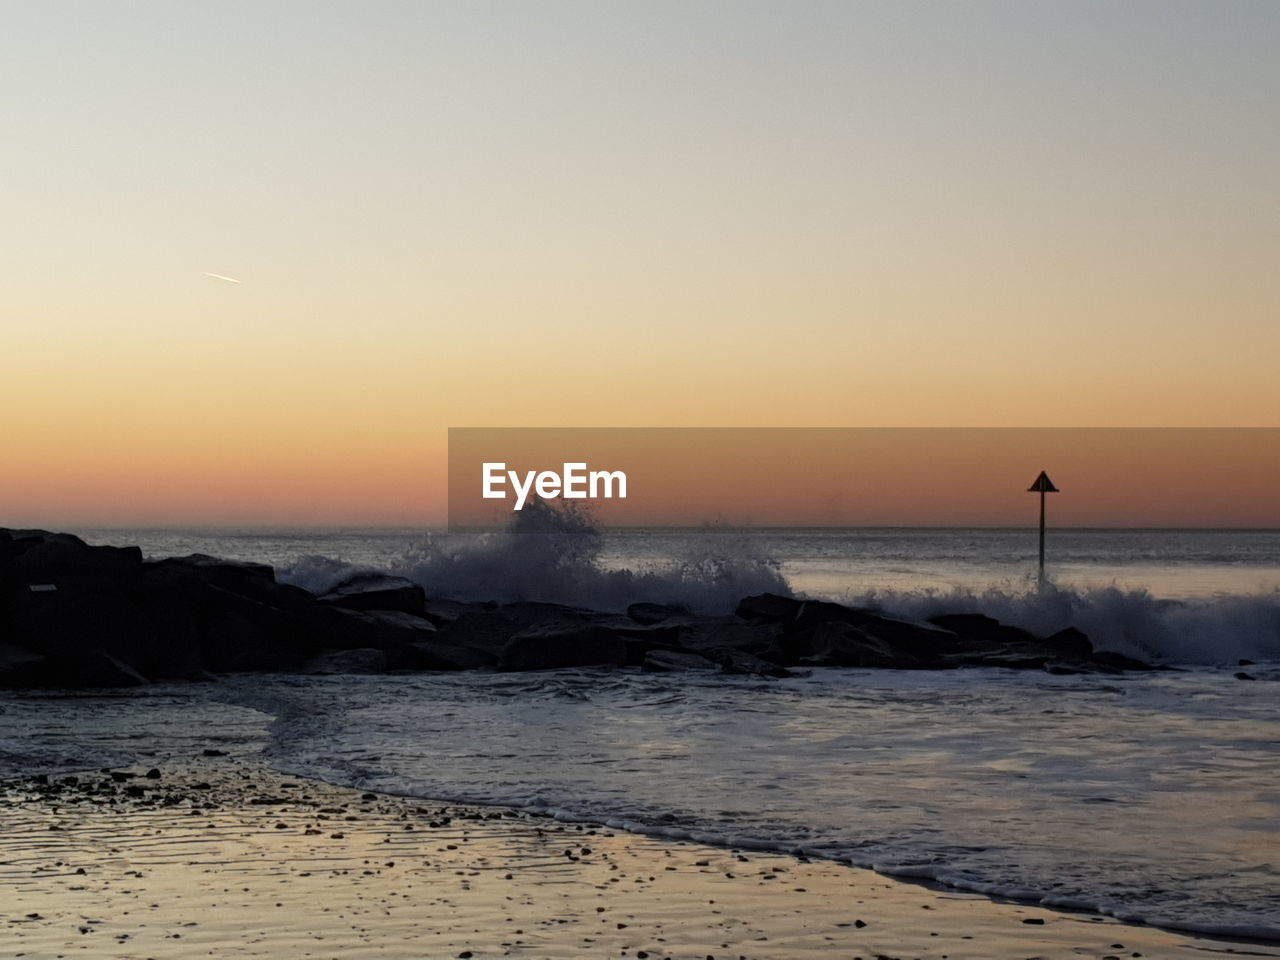 water, sky, sea, sunset, scenics - nature, beauty in nature, beach, tranquility, tranquil scene, nature, non-urban scene, wave, motion, land, horizon over water, idyllic, horizon, silhouette, copy space, no people, outdoors, power in nature, breaking